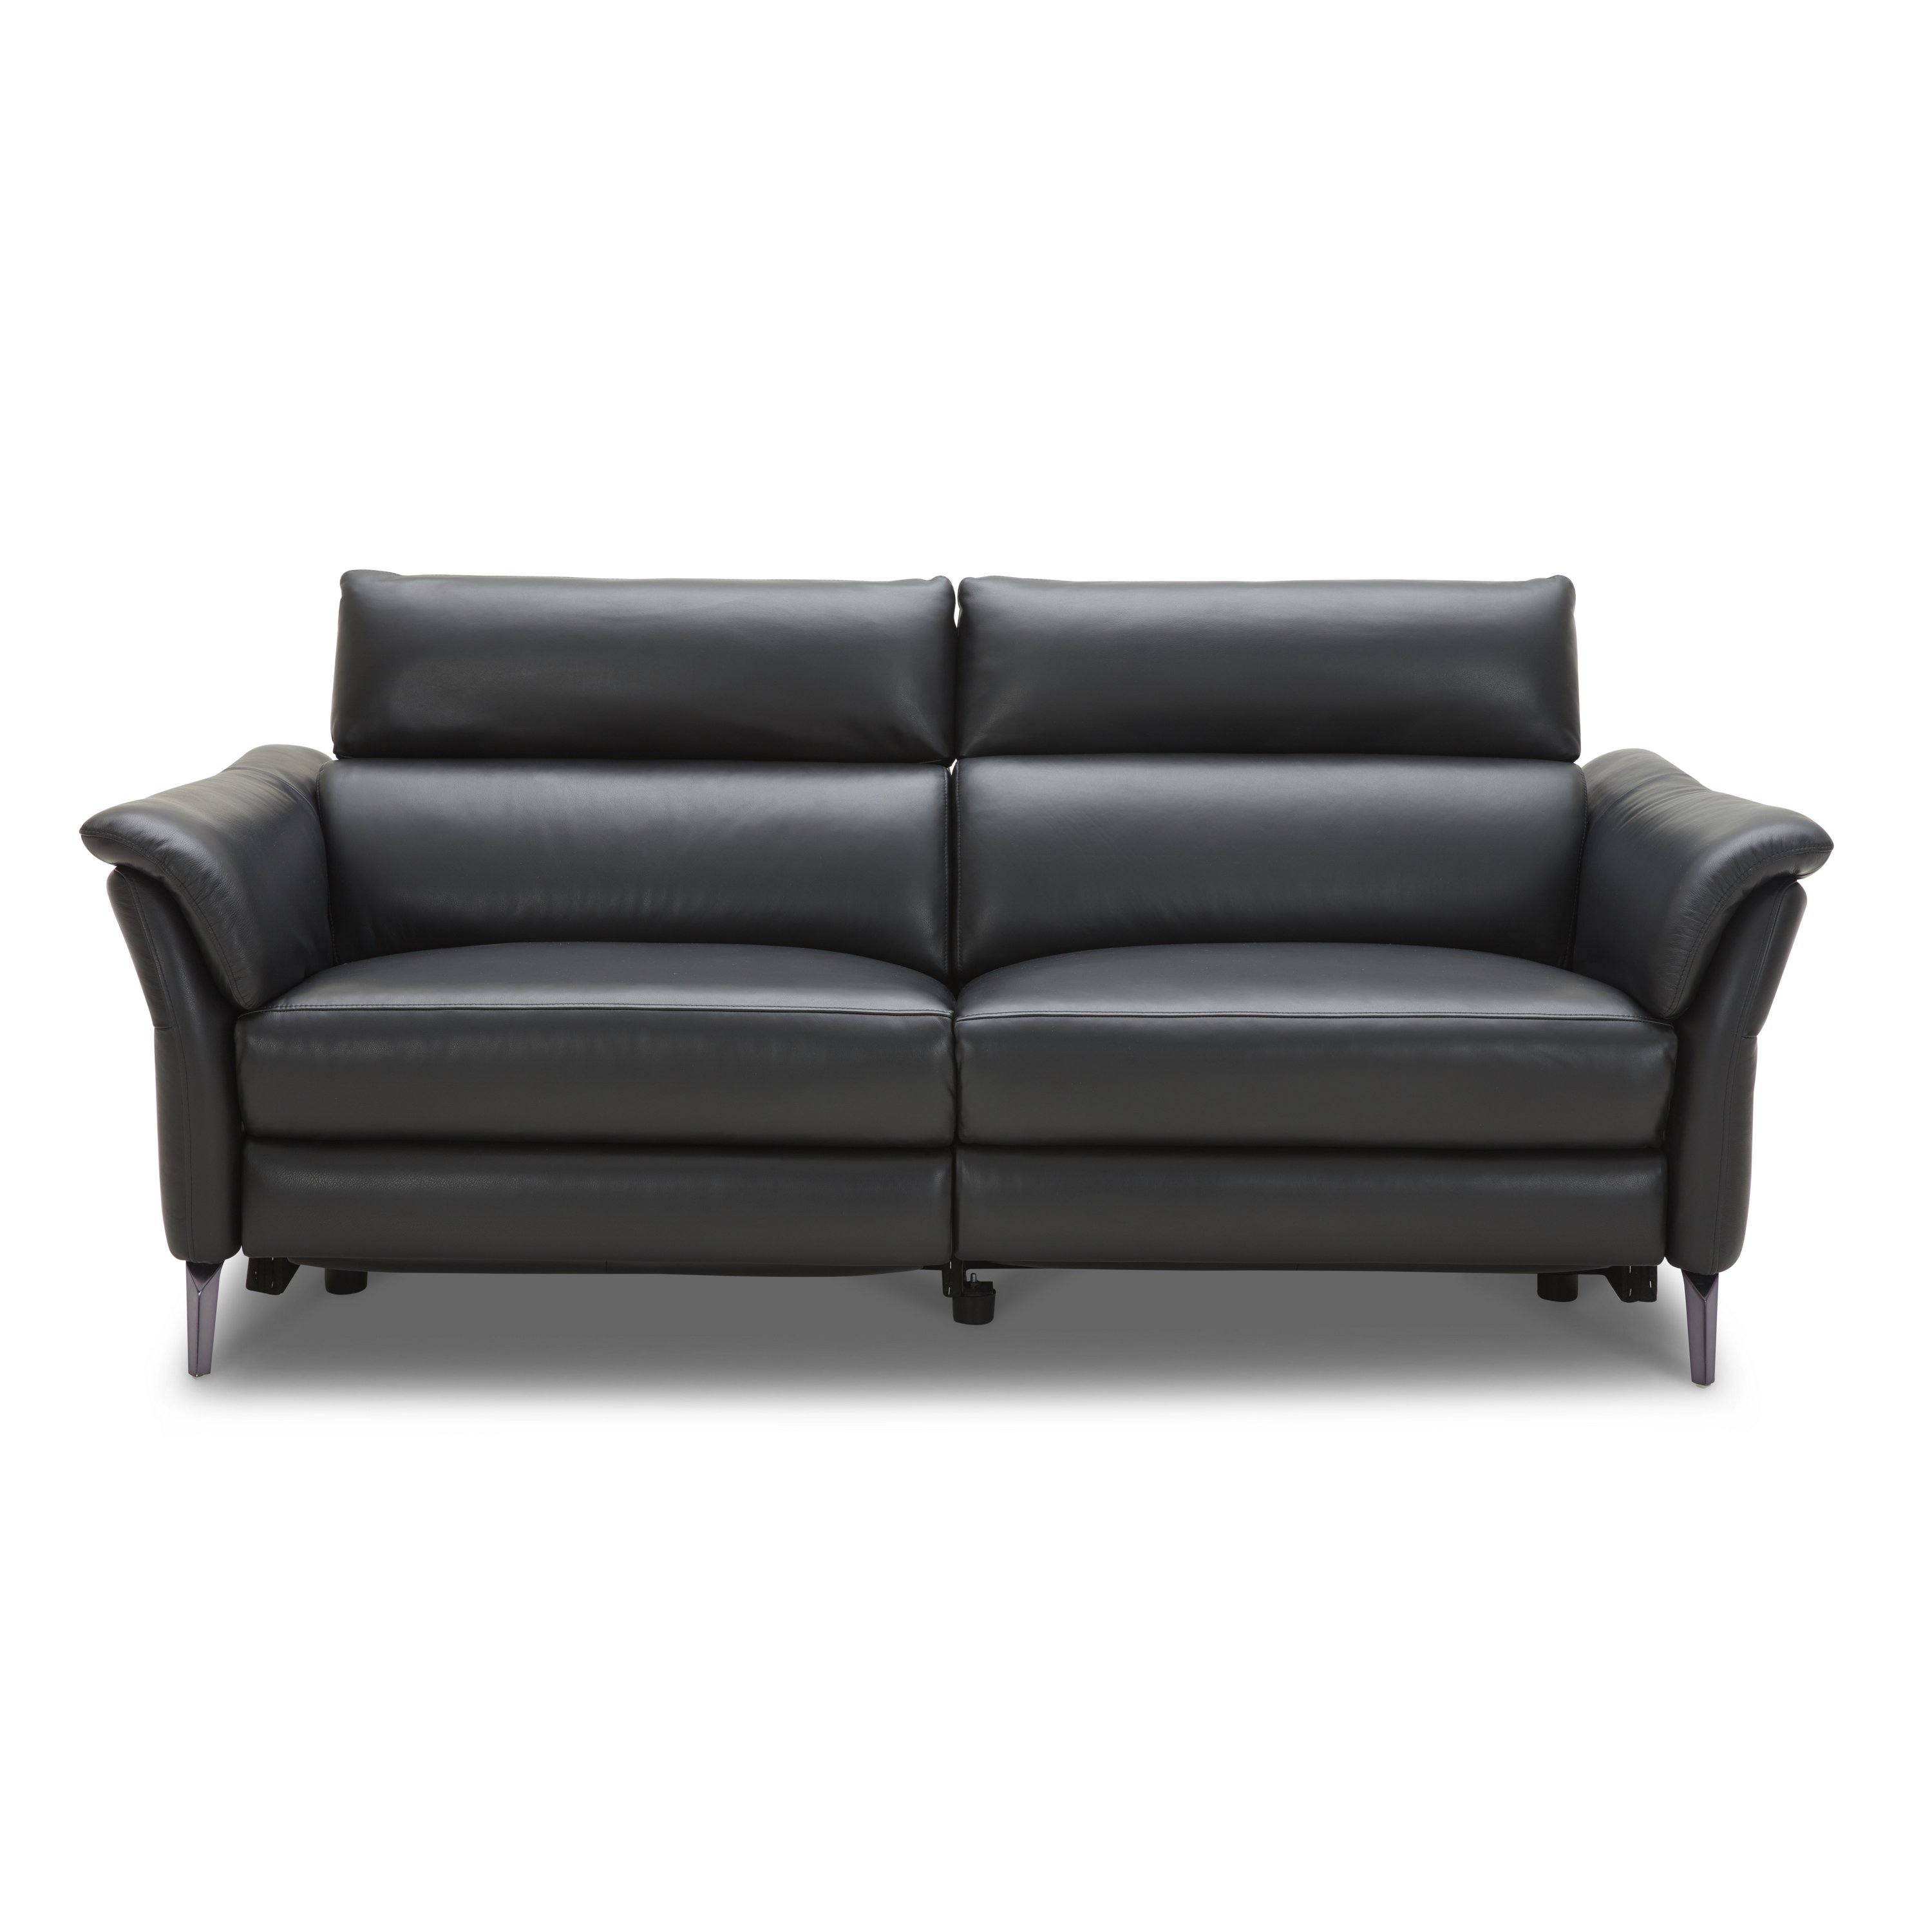 Km 5002 Incliner Leather Sofa Absolute Bedding